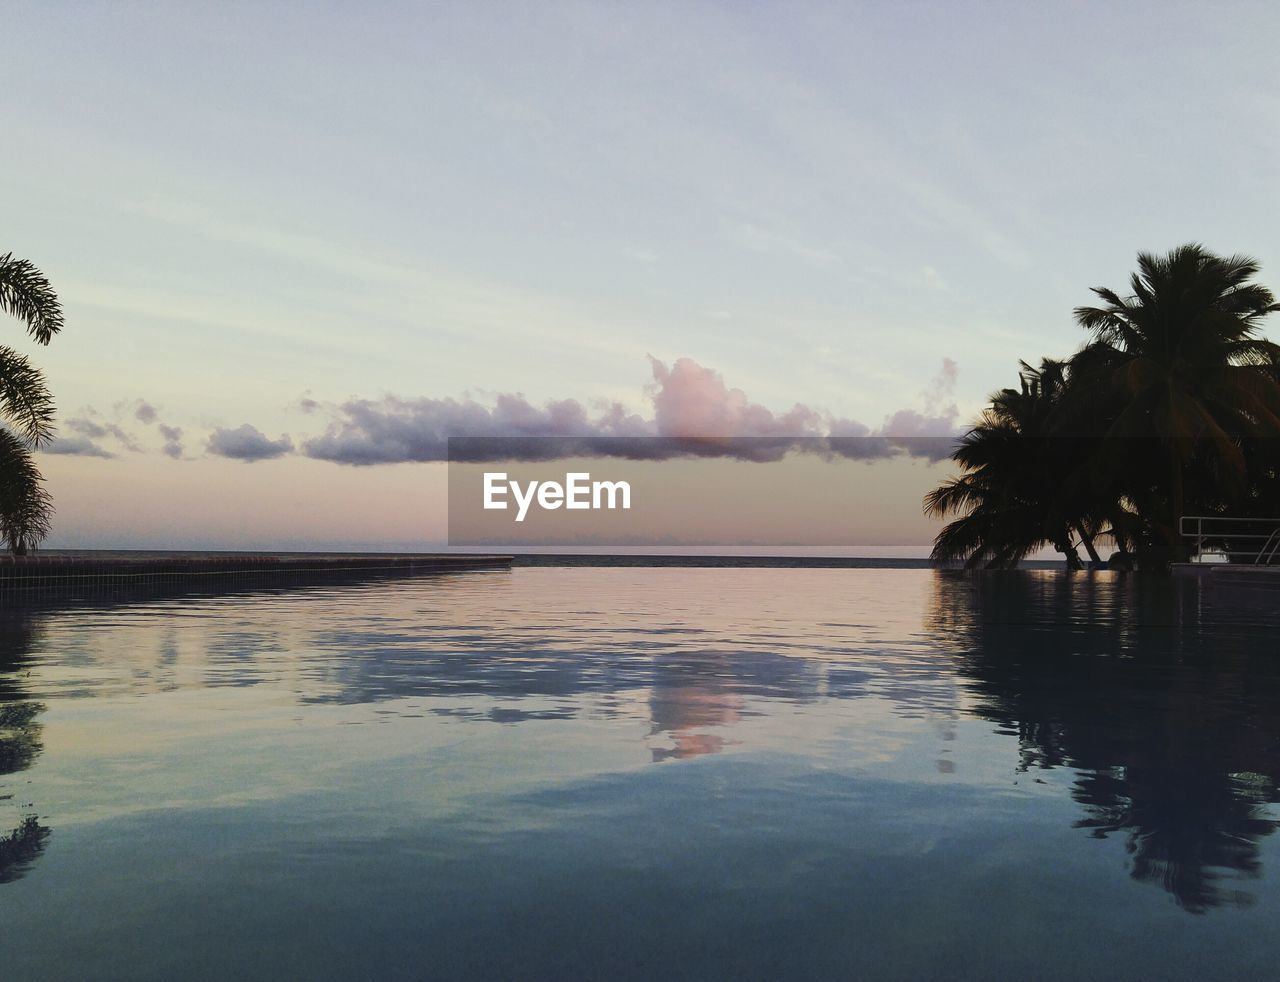 palm tree, tranquility, water, reflection, beauty in nature, tranquil scene, nature, scenics, sky, tree, no people, outdoors, sunset, day